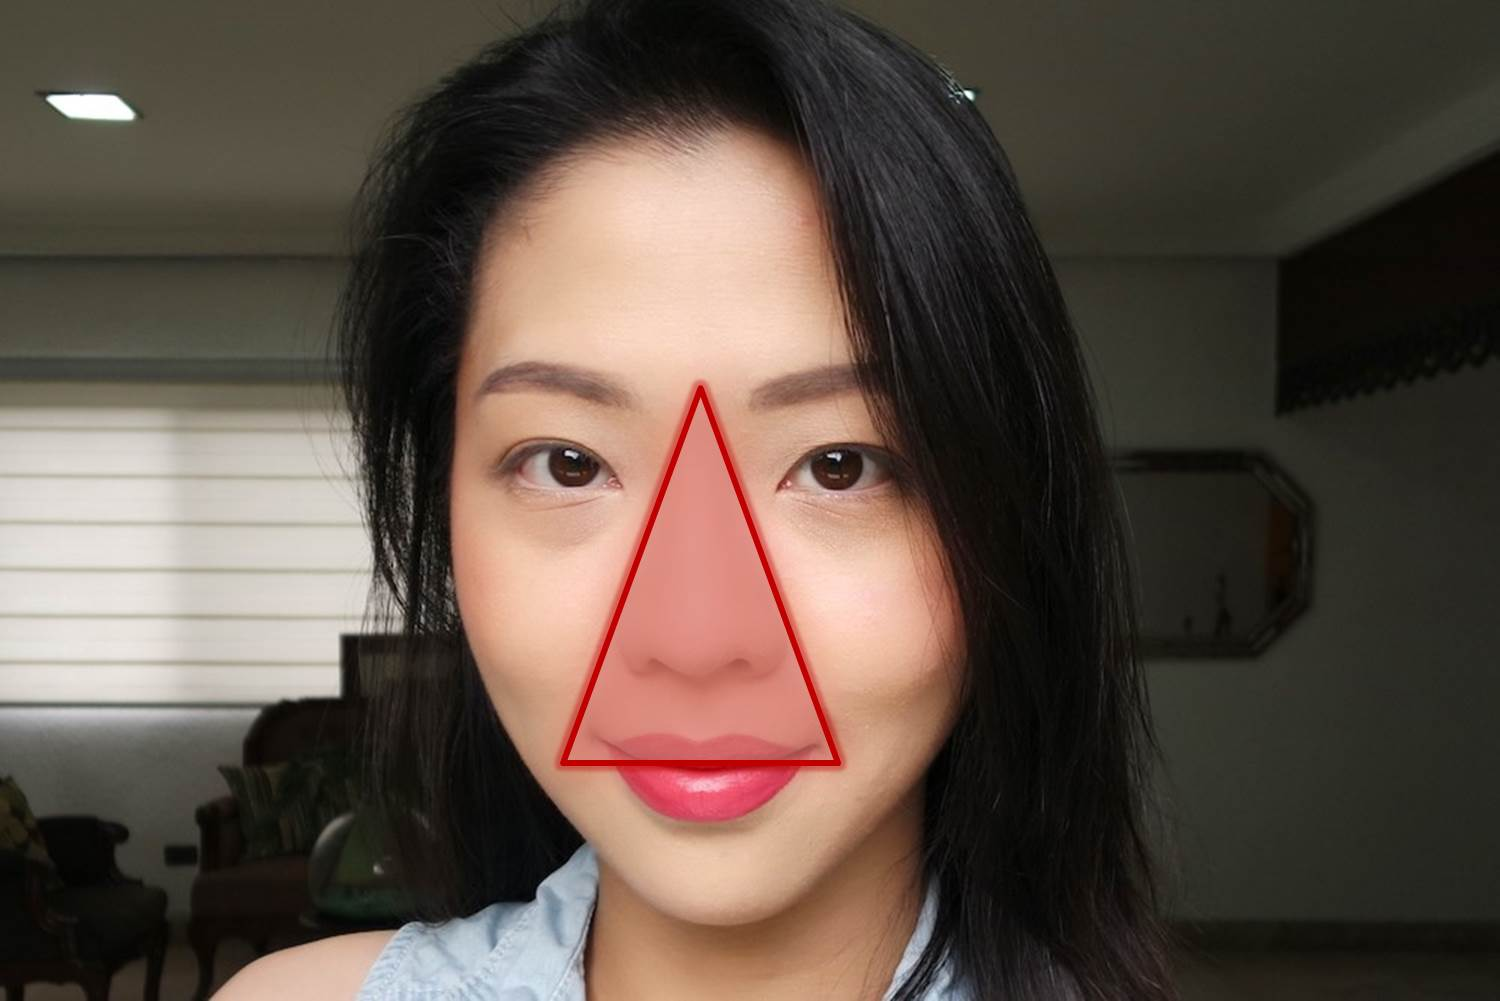 The Triangle Of Death Can Popping Pimples Actually Kill You